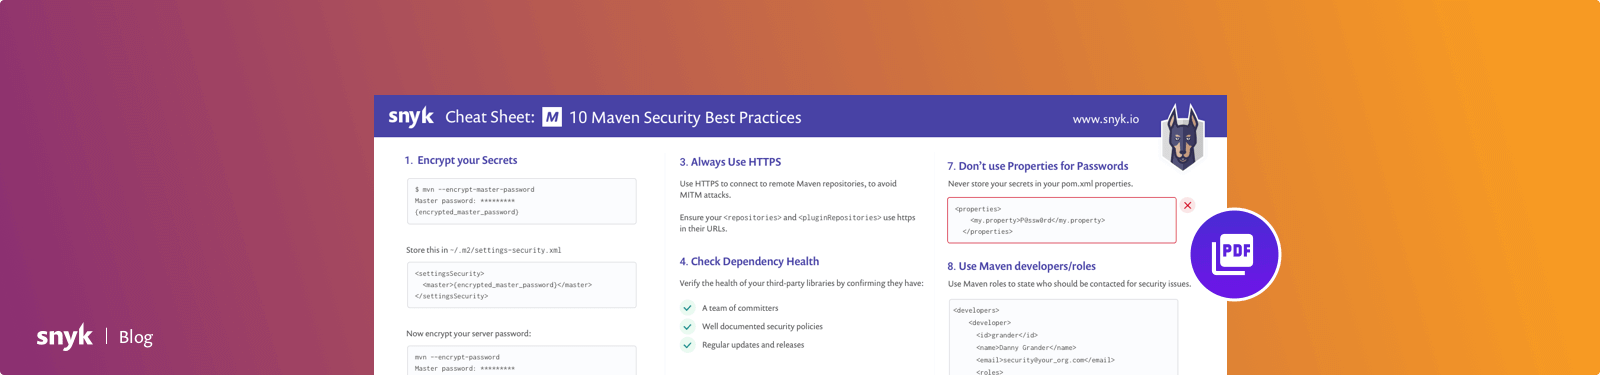 10 Maven Security Best Practices | Snyk